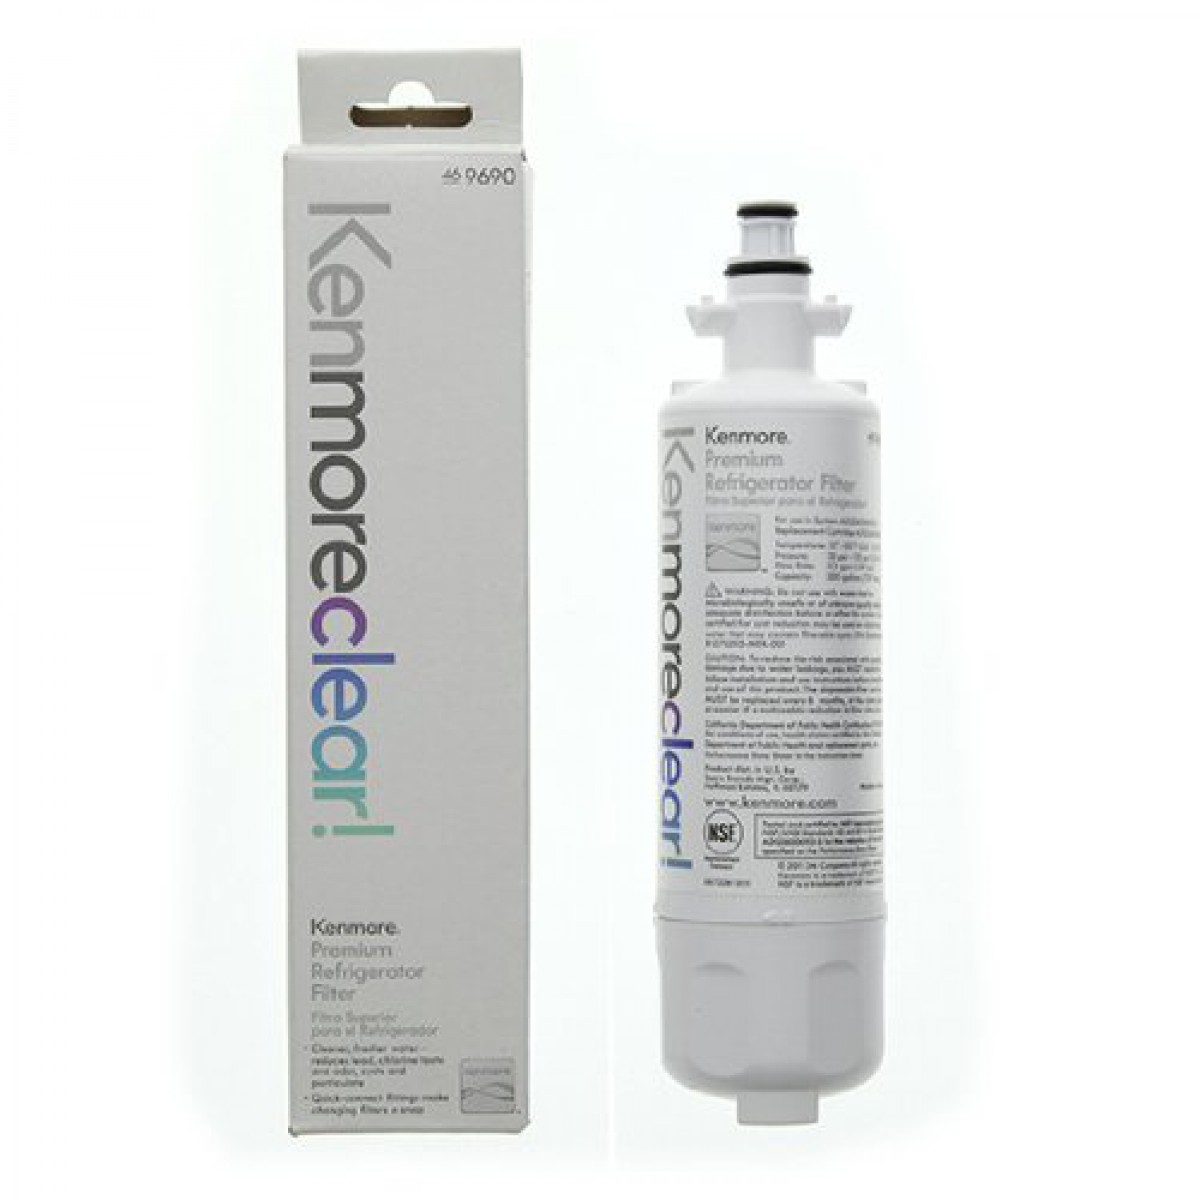 Image Result For Kenmore Water Filter